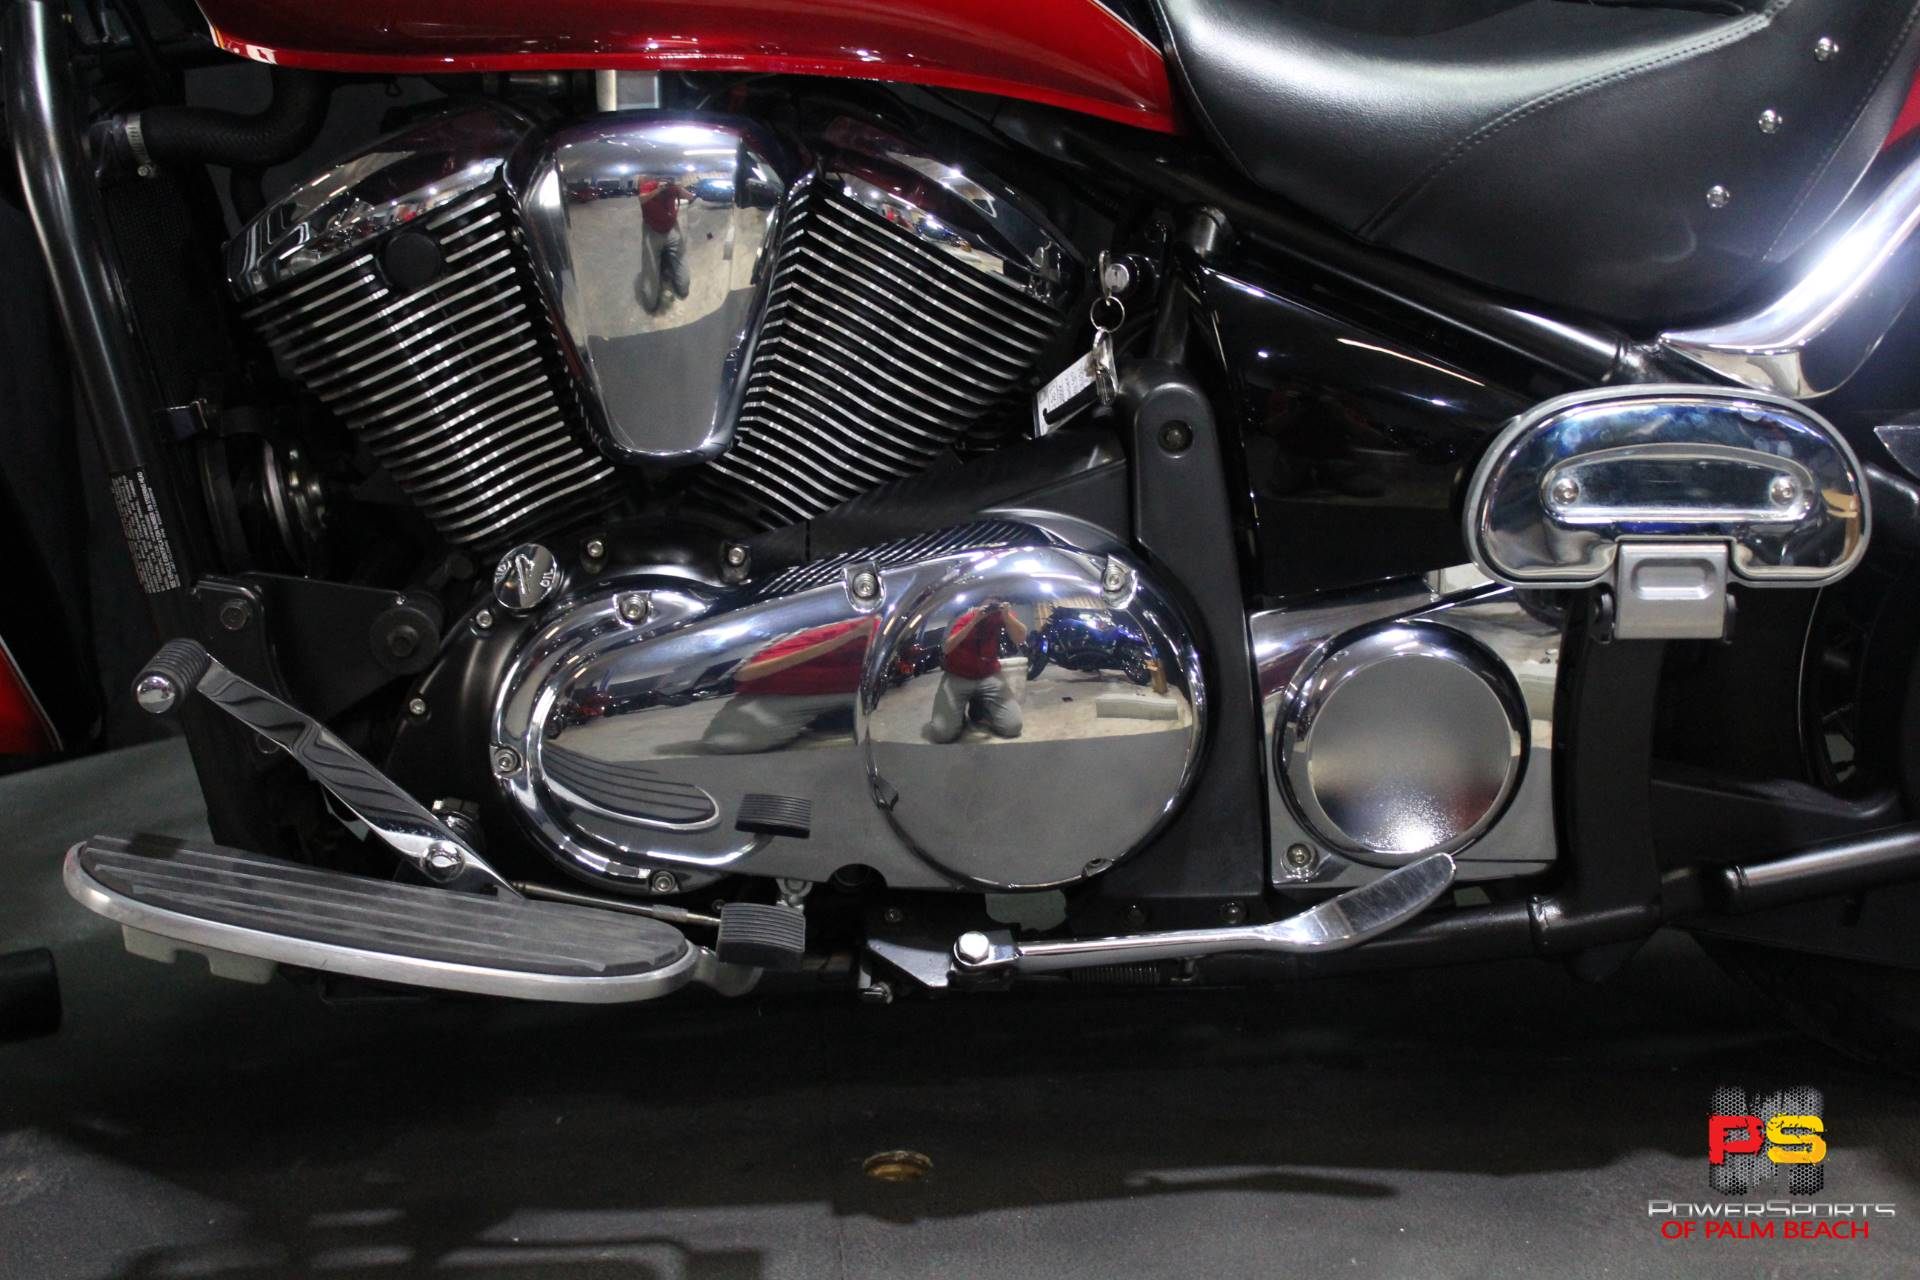 2006 Kawasaki Vulcan 900 Classic LT in Lake Park, Florida - Photo 19